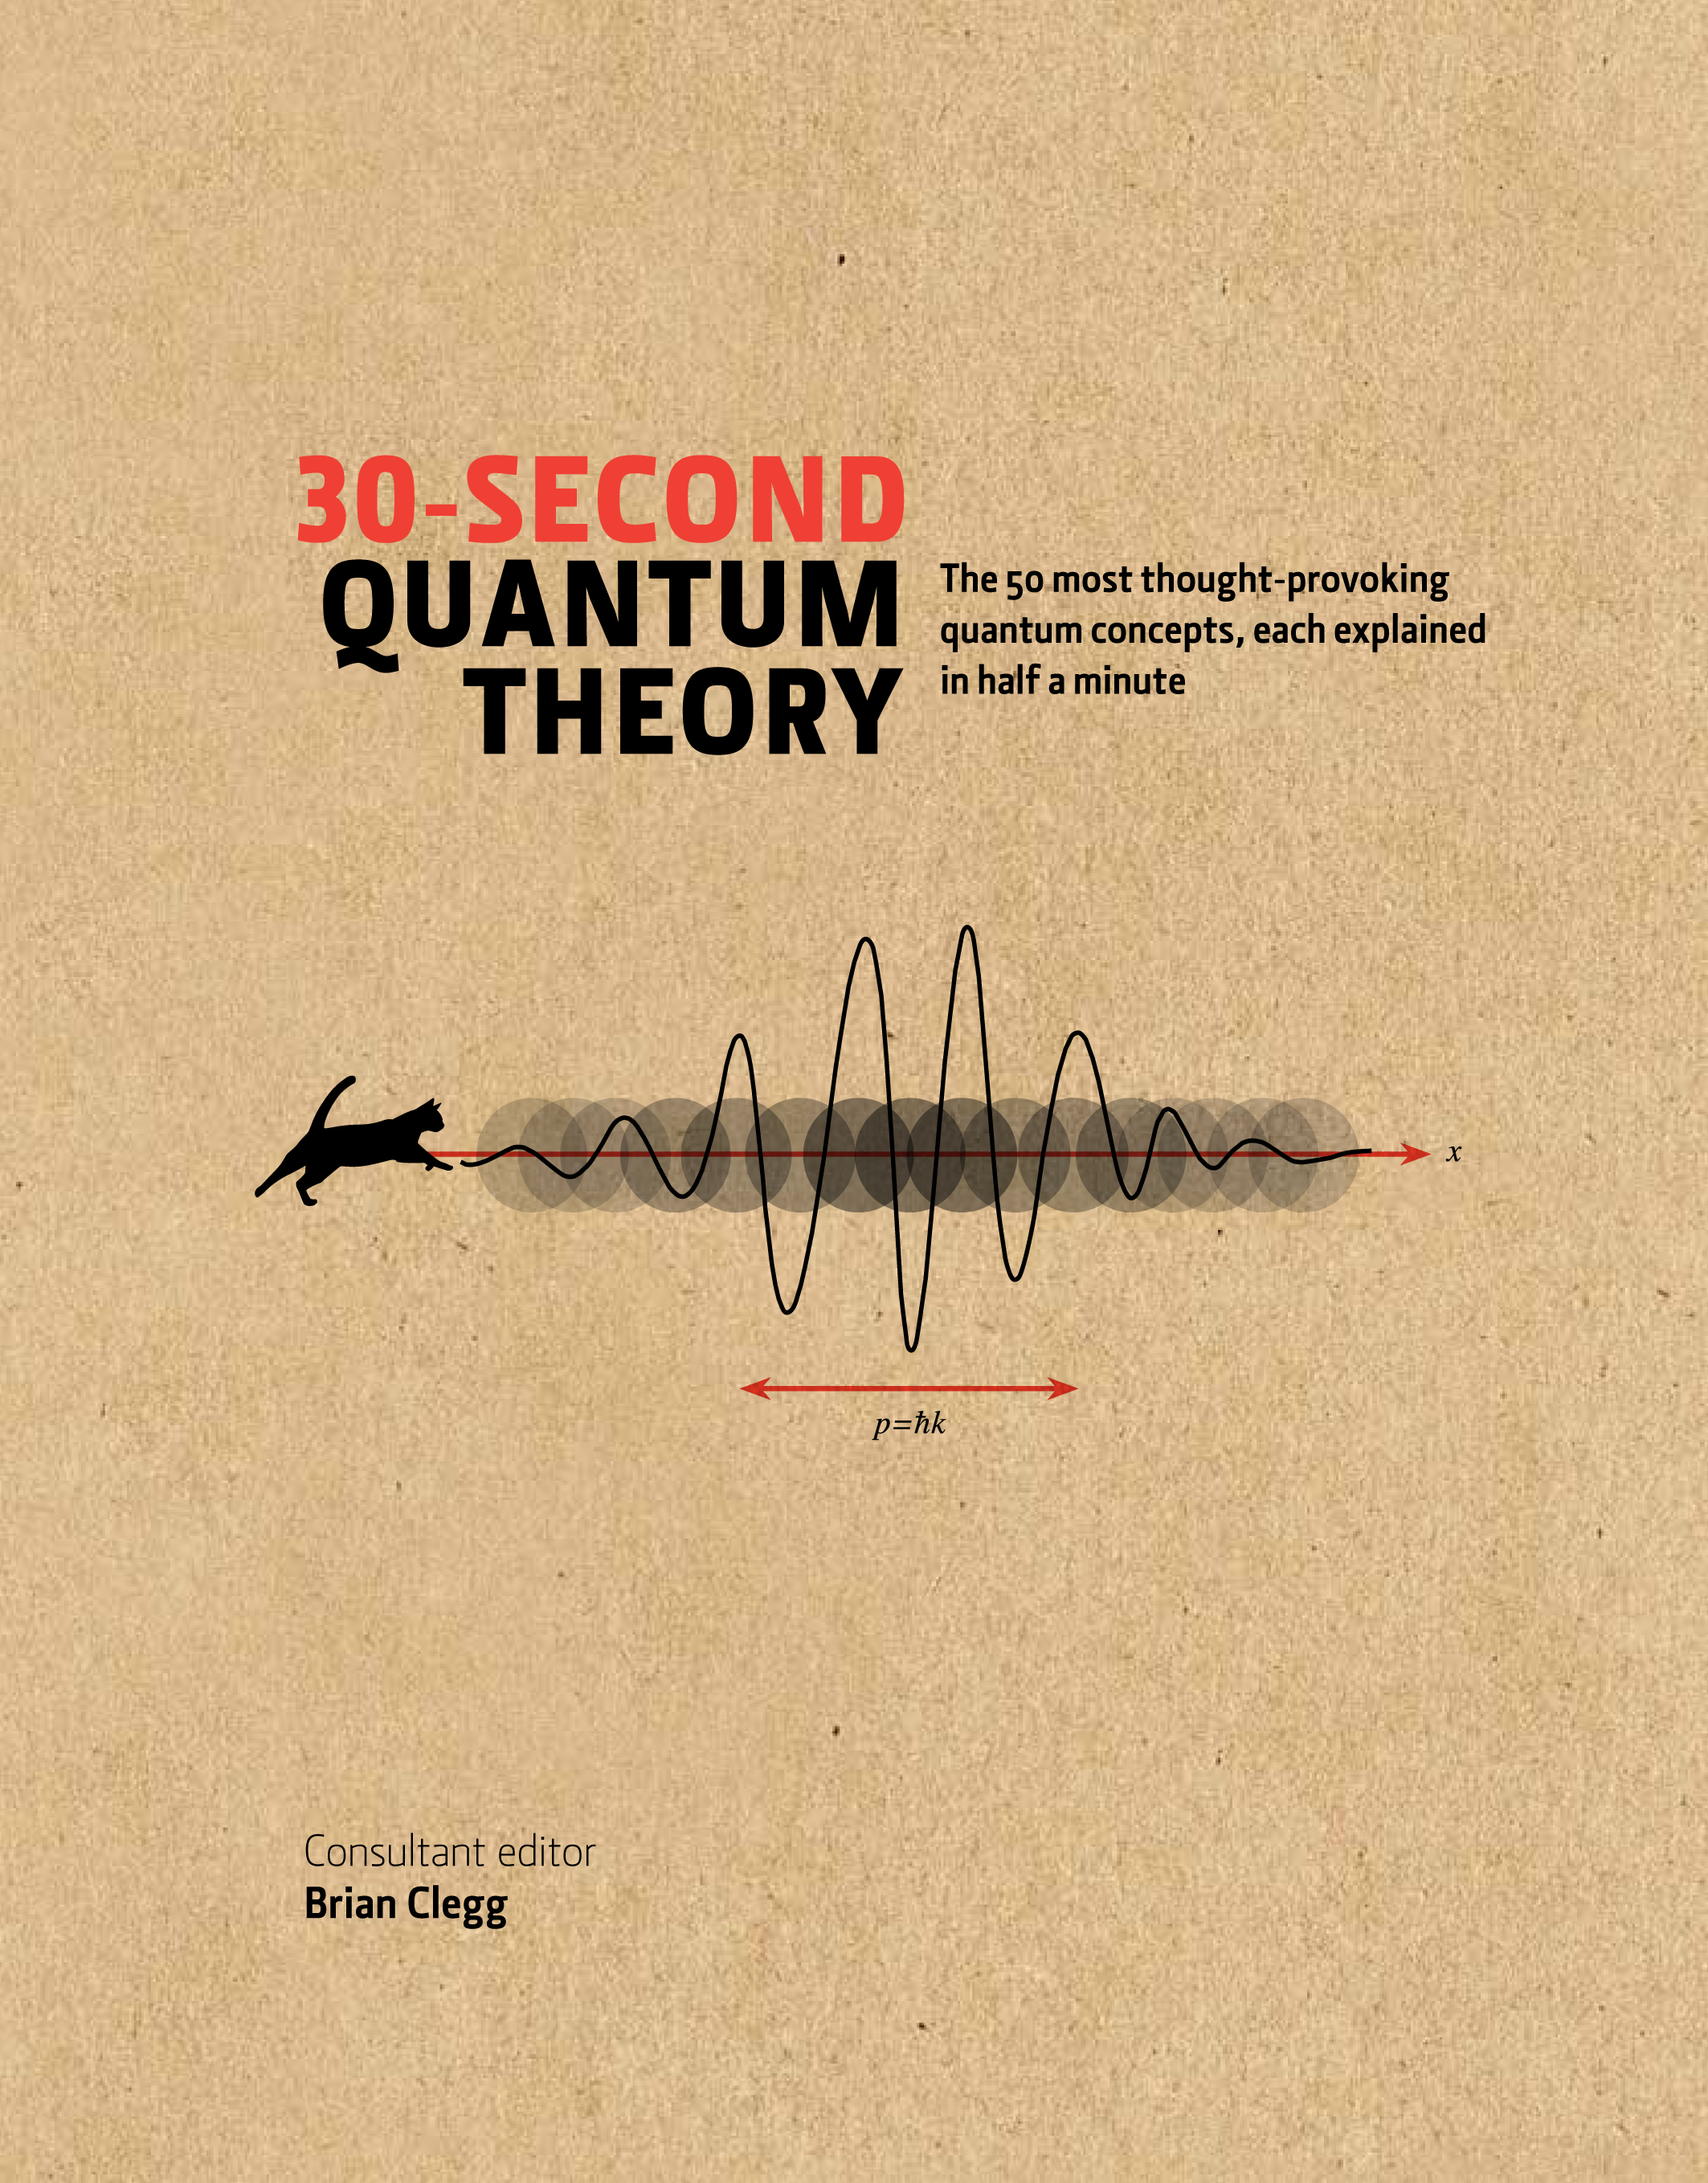 Front cover of 30-Second Quantum Theory